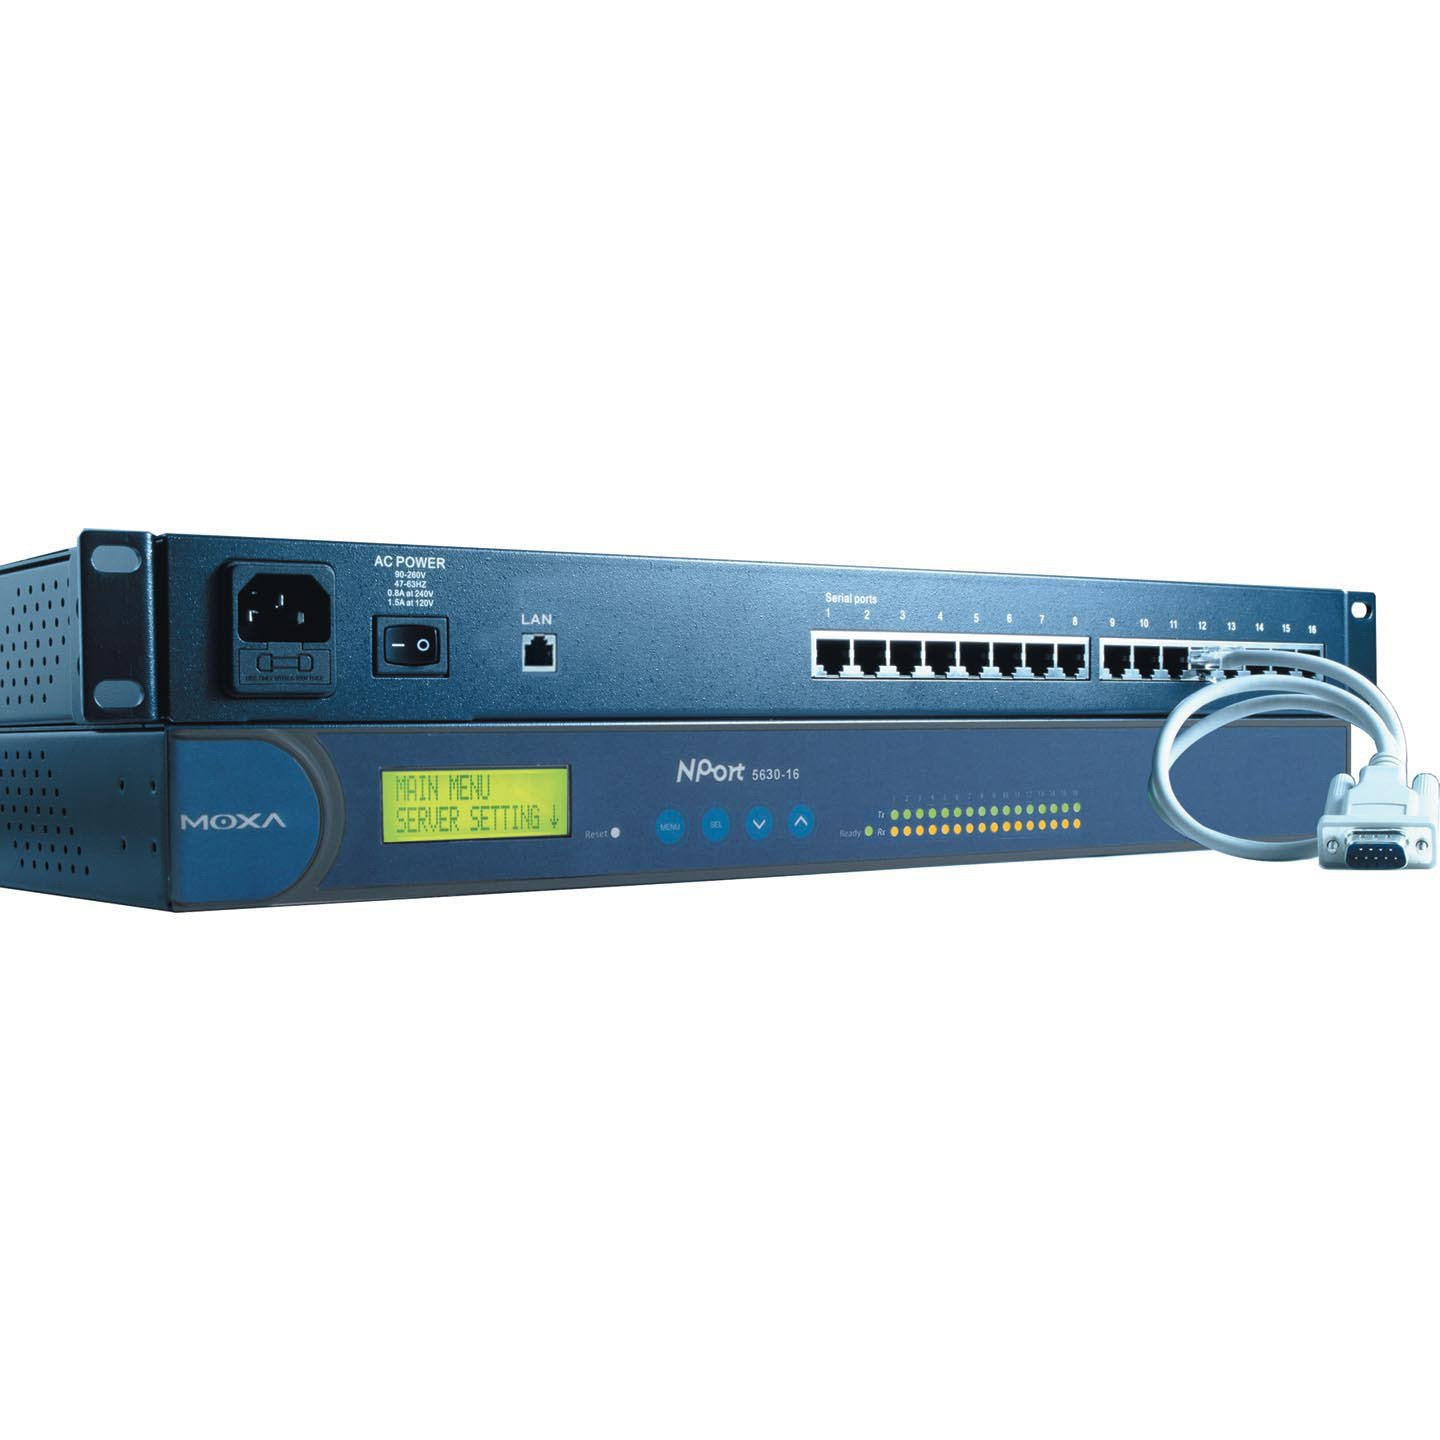 Moxa NPort 5630-16 16-Port RS-232/422/485 Rackmount Serial Device Server, 10/100 Ethernet, RS-422/485, RJ-45, 15KV ESD, 110V by NPort